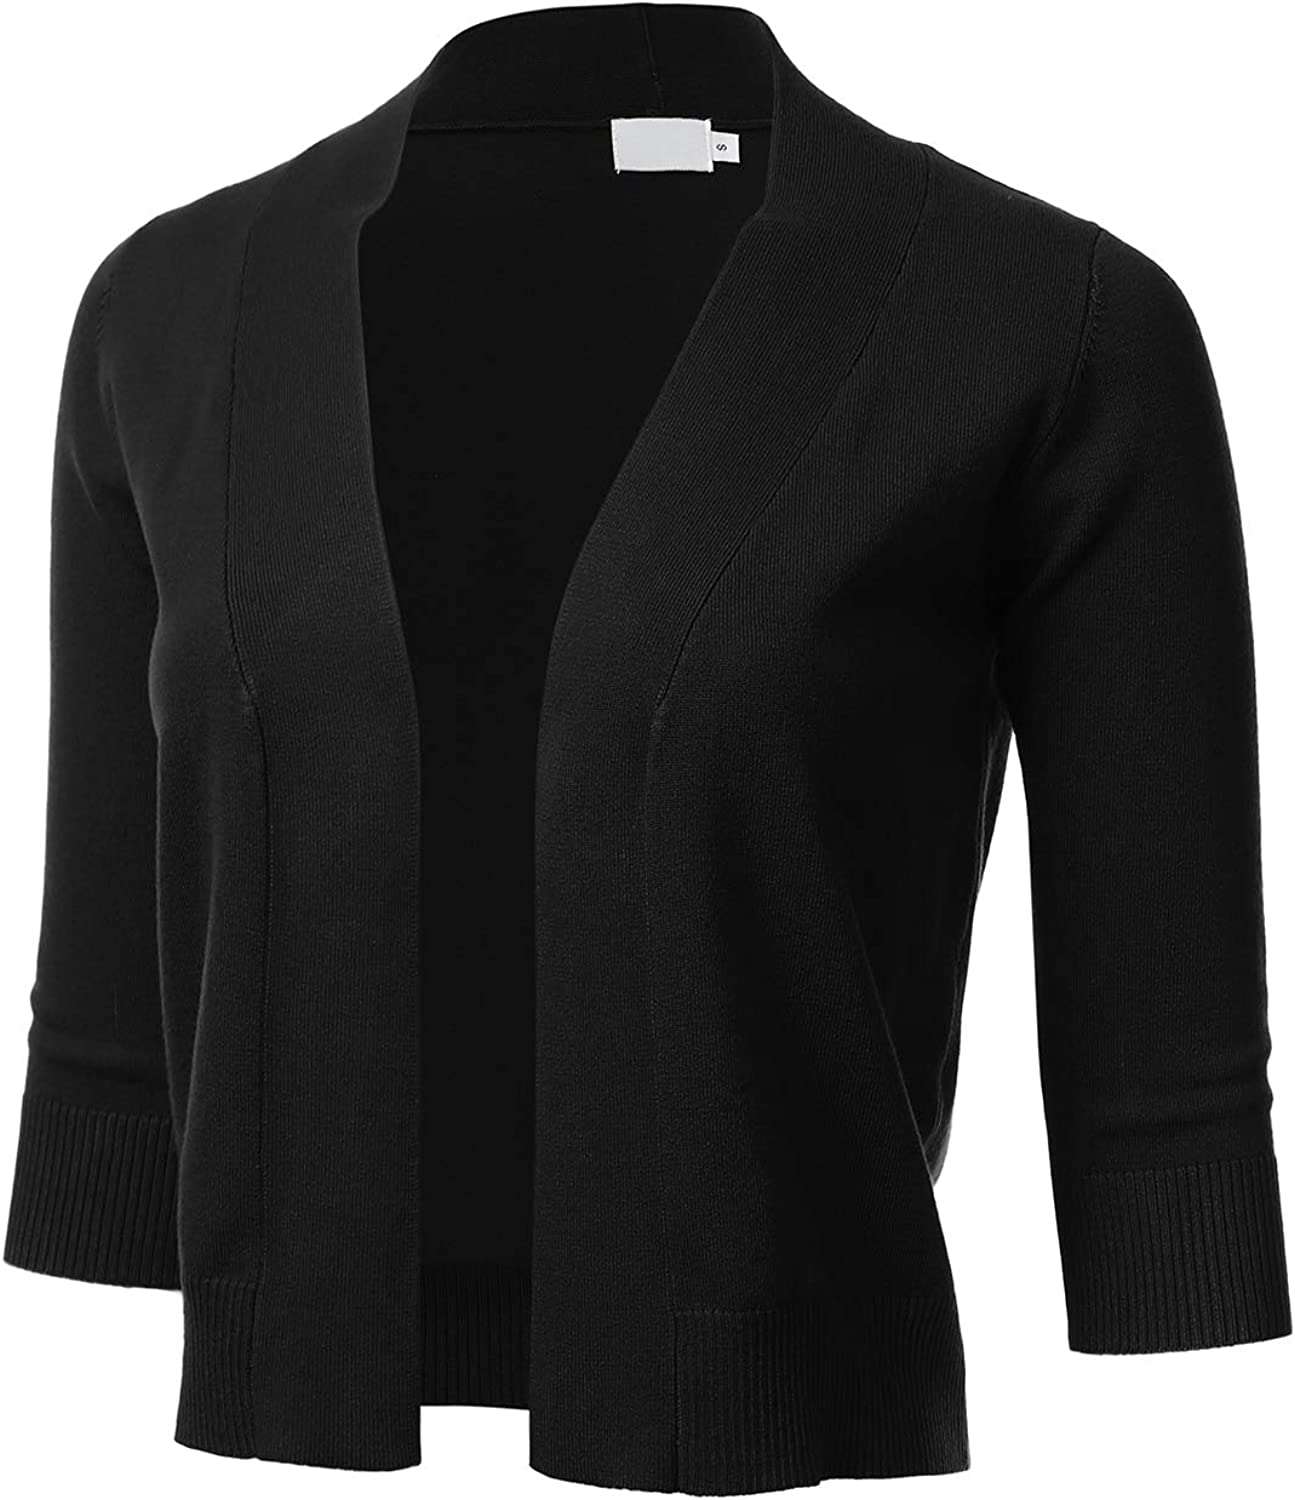 Women's Classic 3/4 Sleeve Open Front Cropped Cardigan (S-3XL)